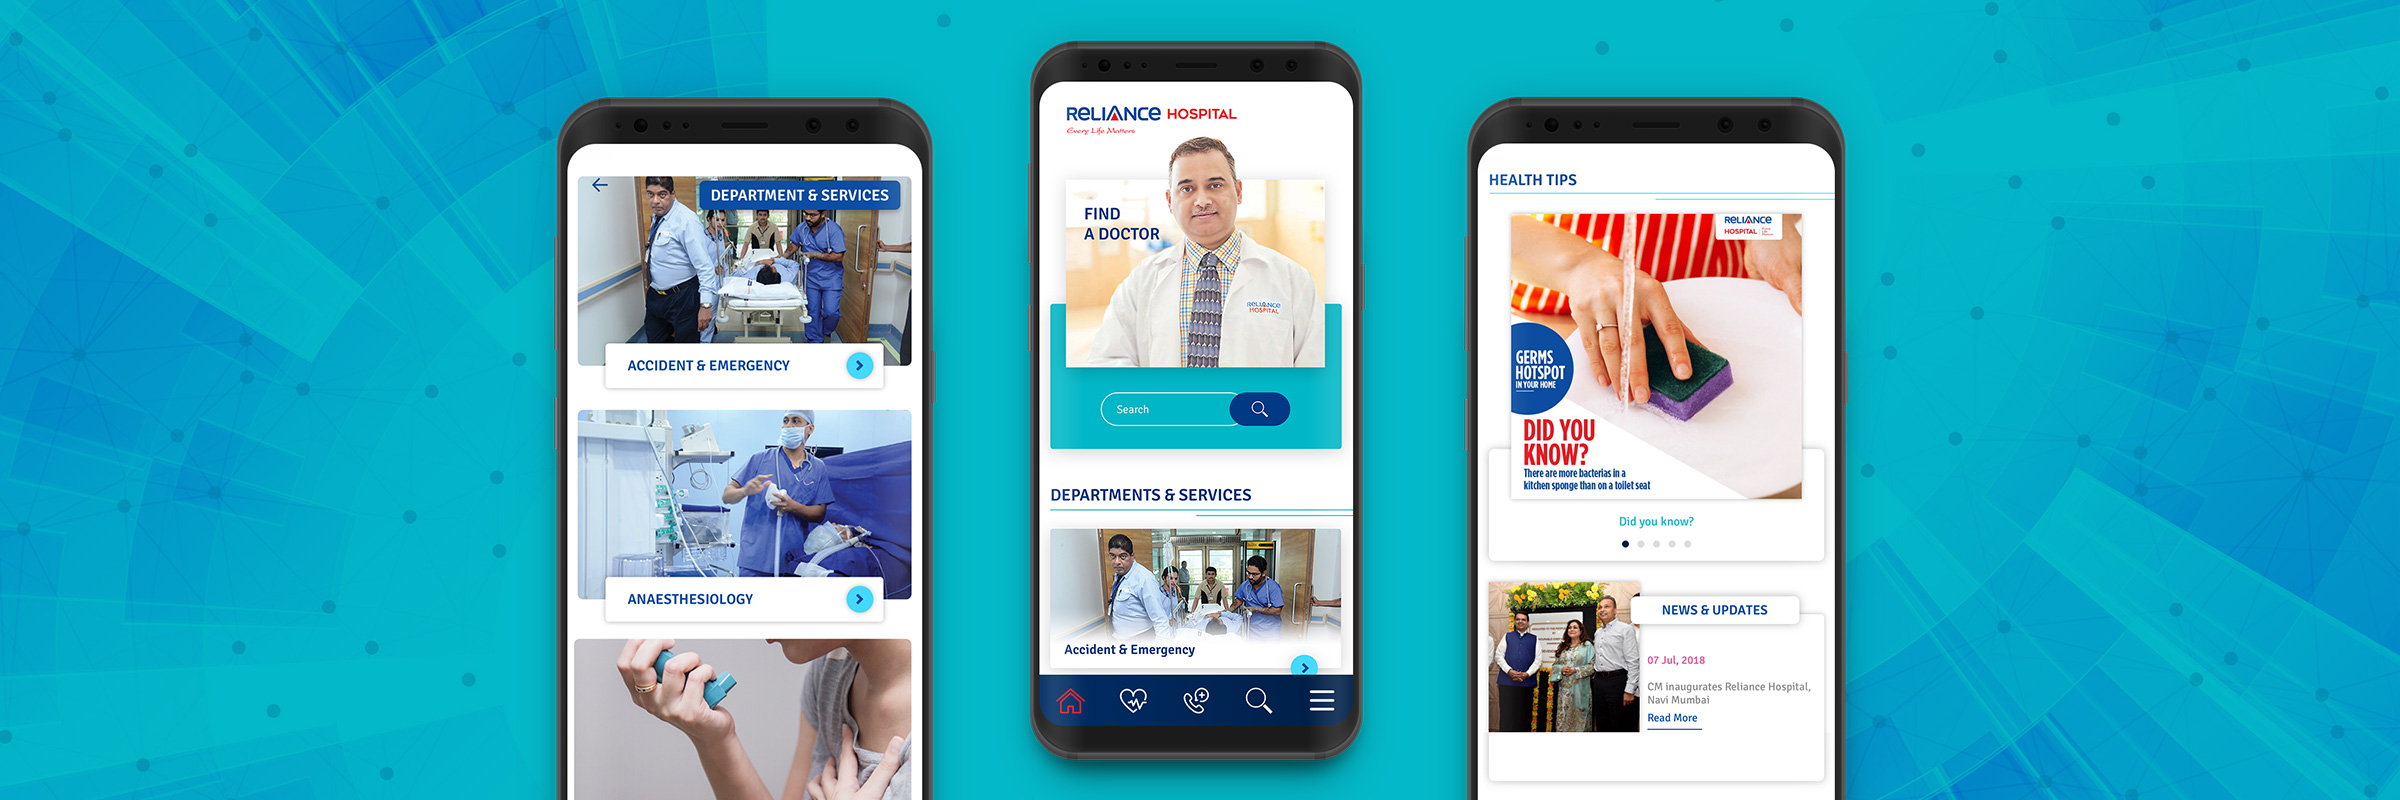 Reliance Hospitals Mobile Application